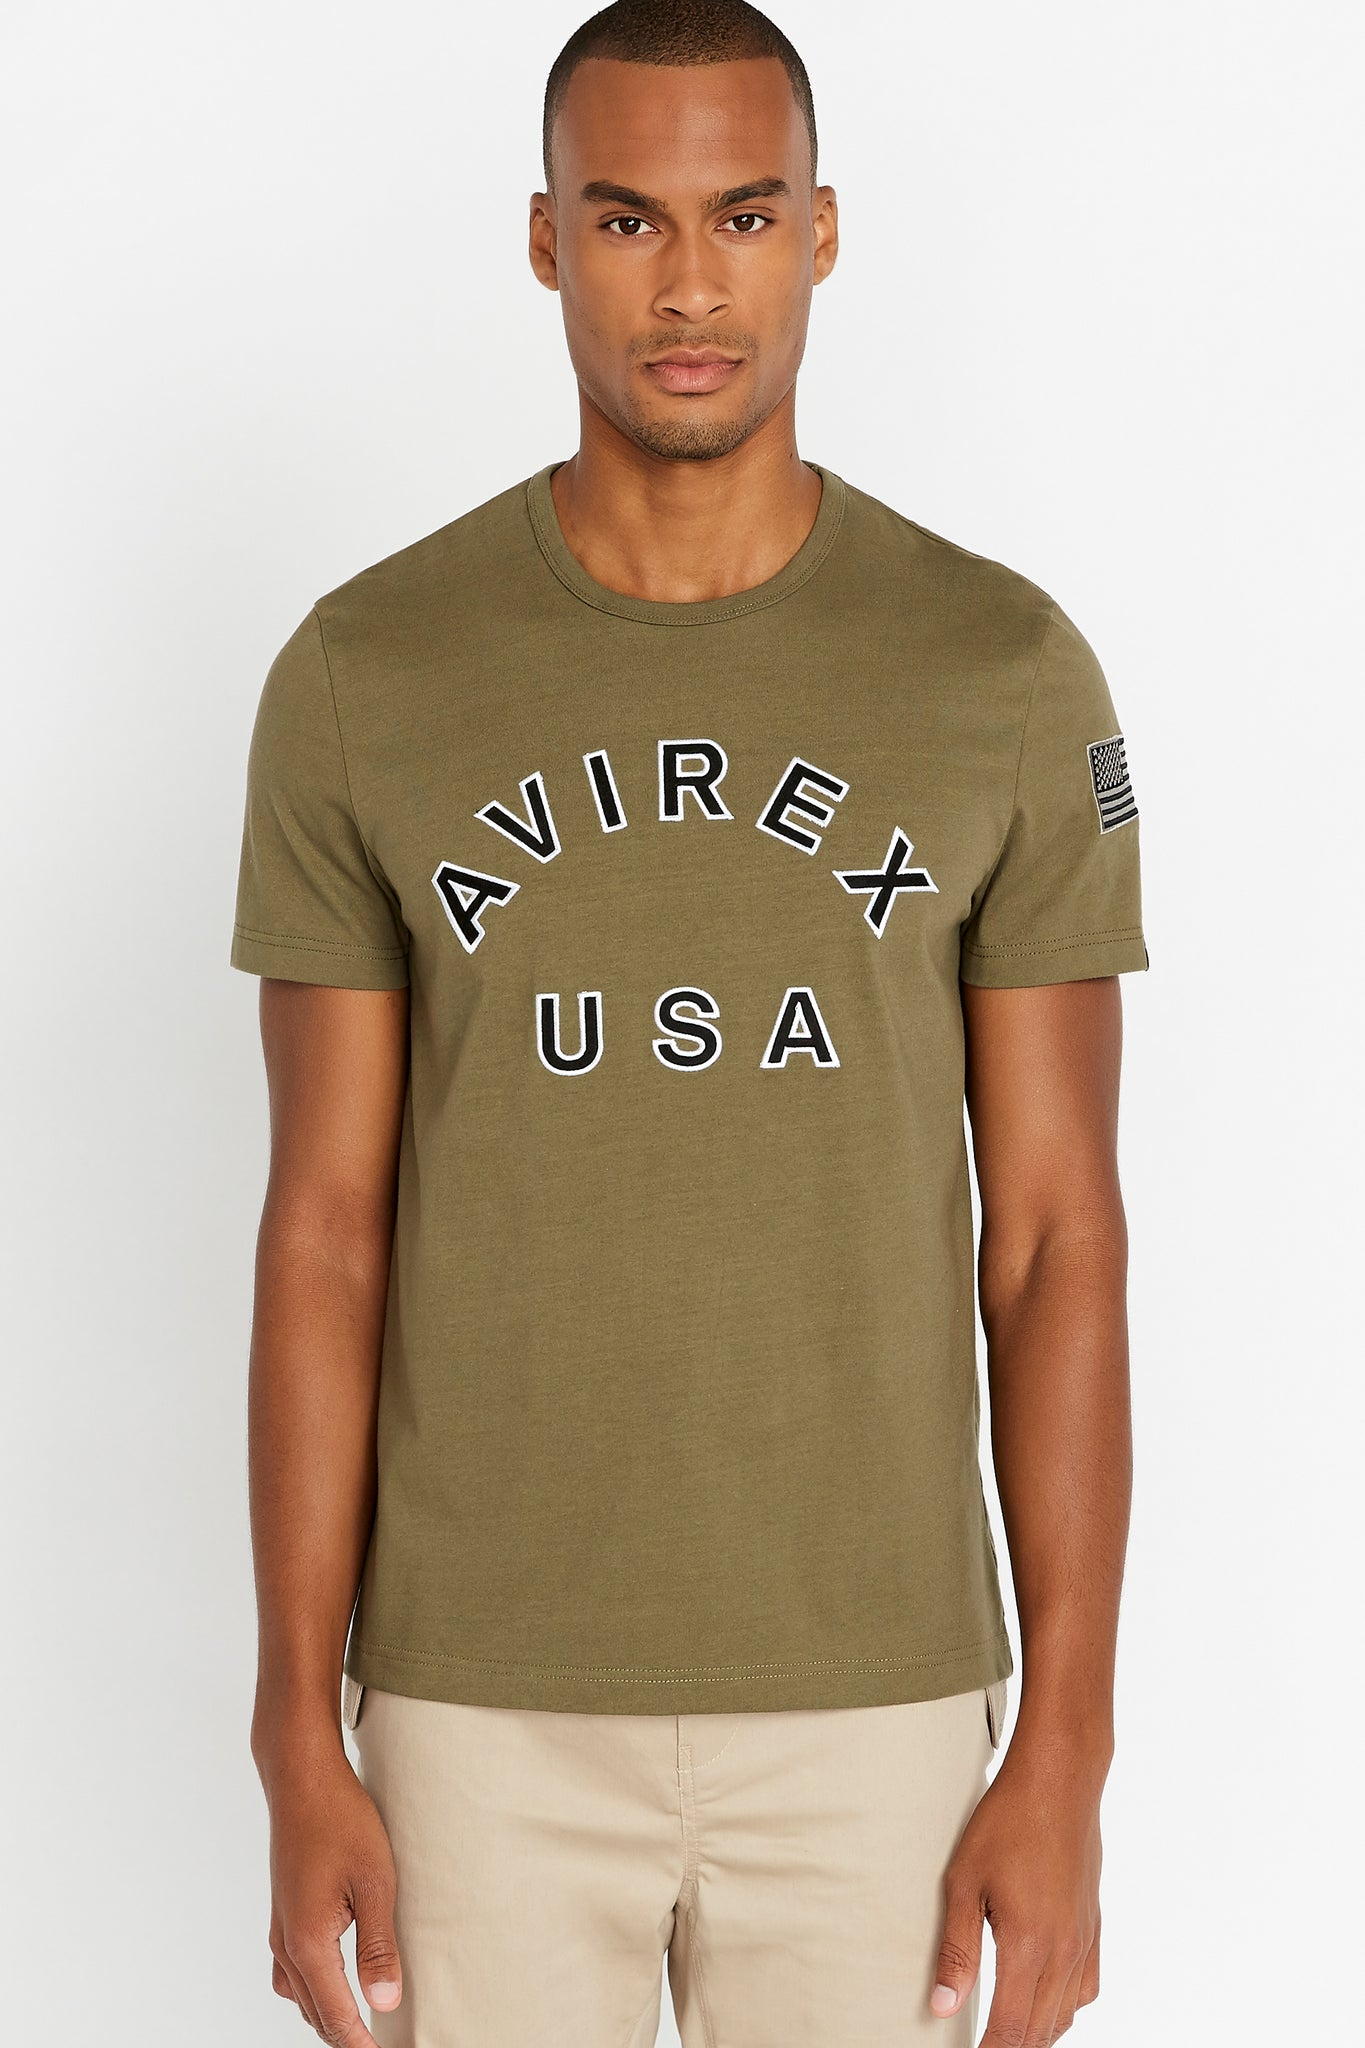 Men wearing an olive short sleeve crew T-shirt with bold logo across the front saying Avirex USA